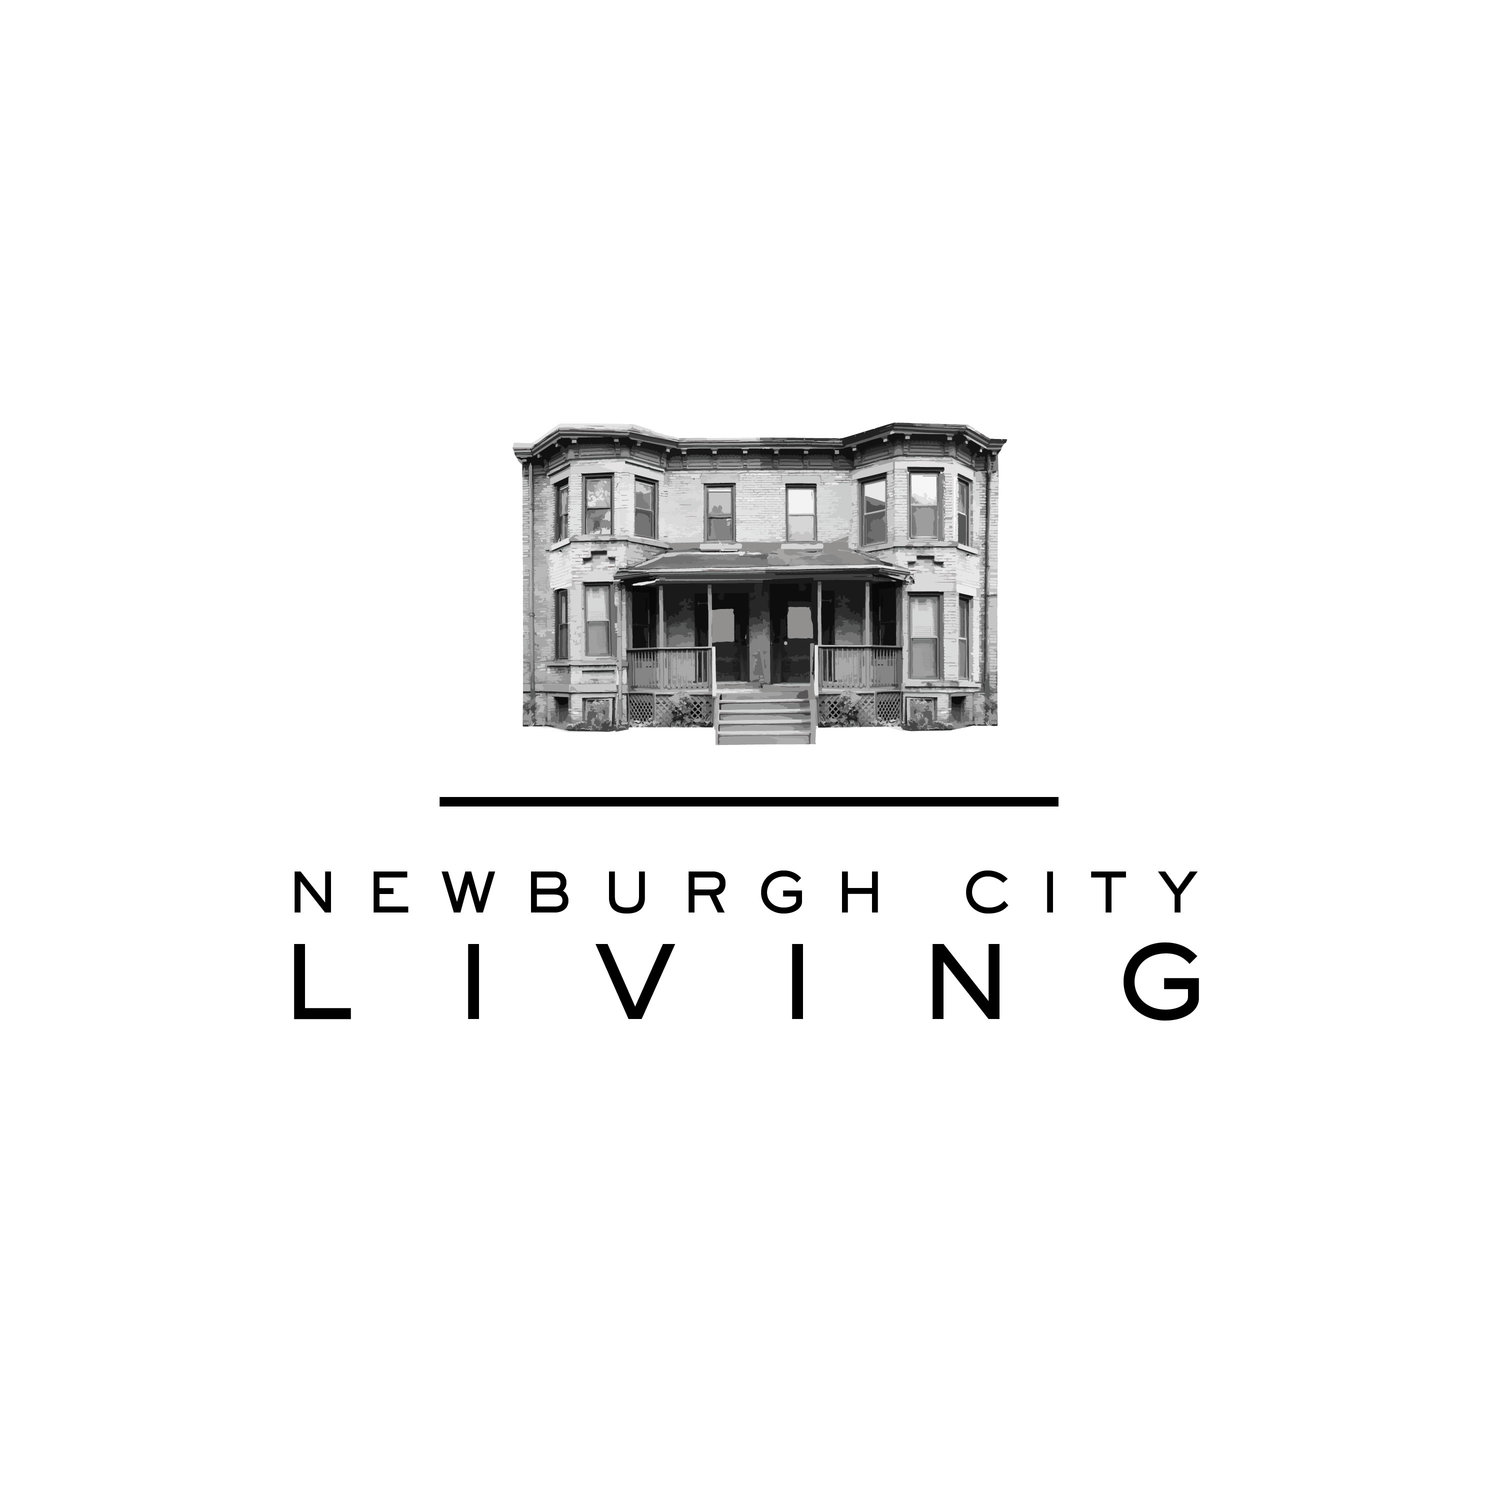 Newburgh City Living